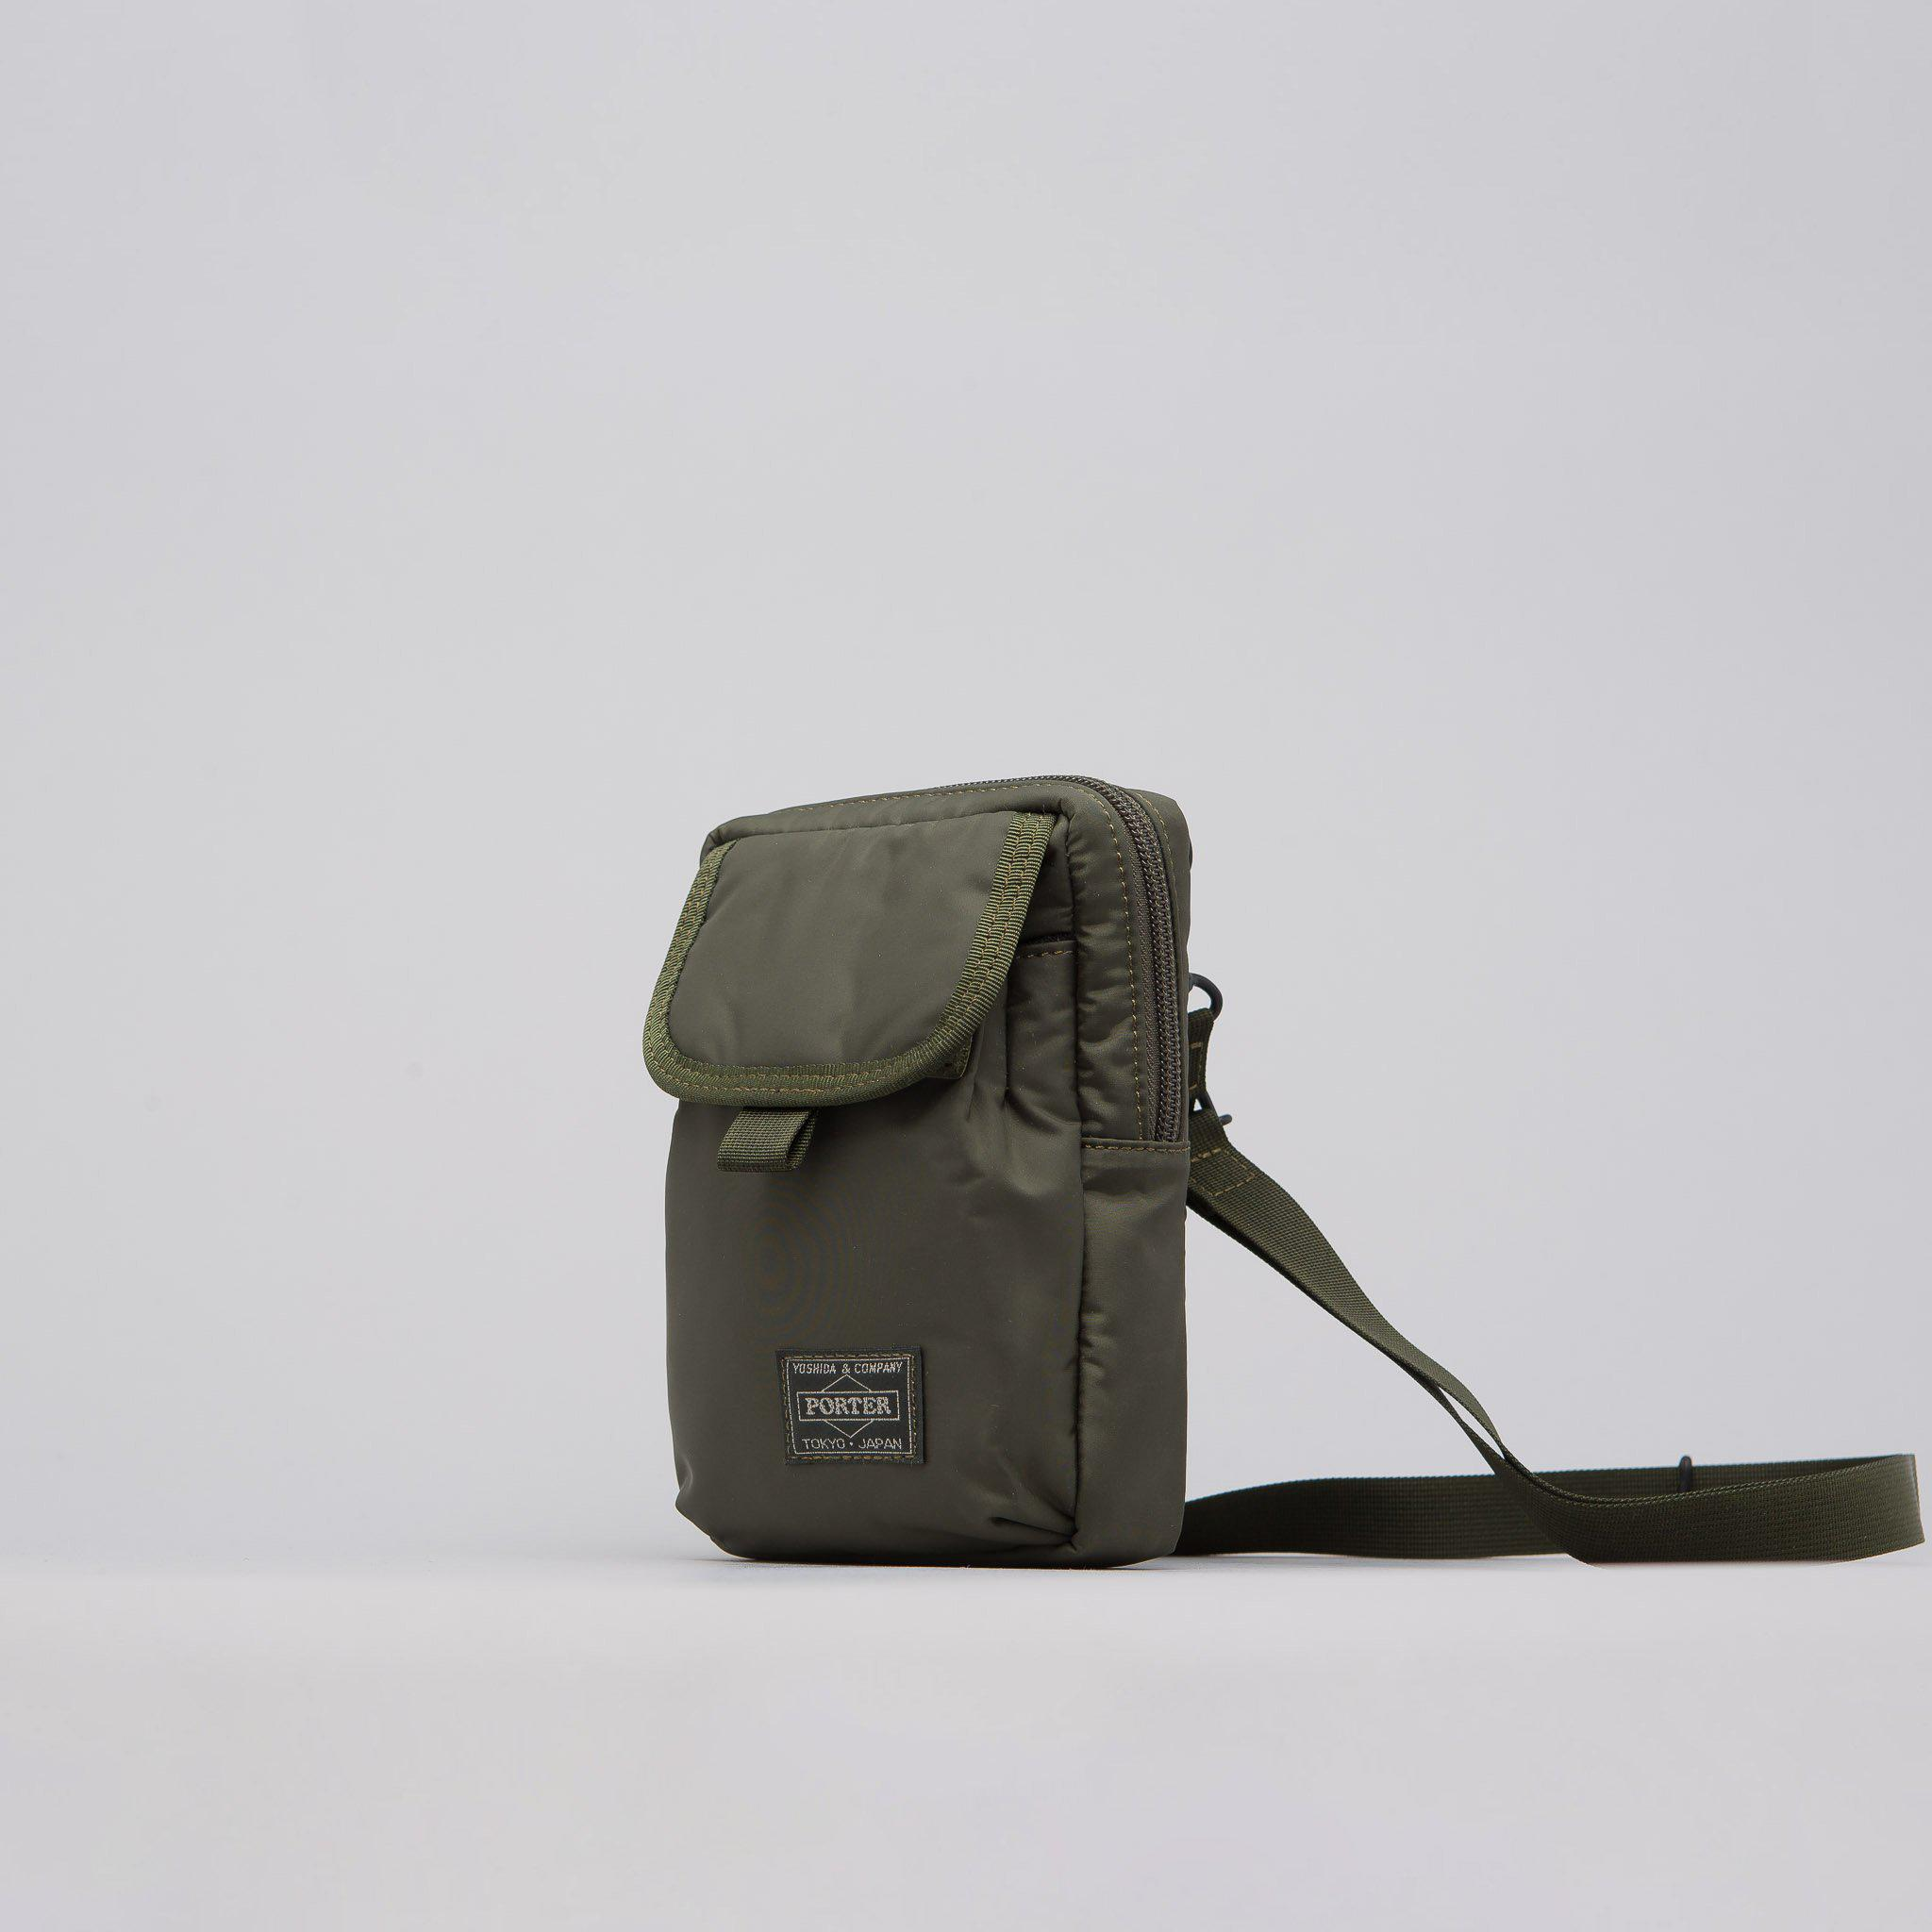 f9b5069c9452 Lyst - Head Porter Shoulder Pouch In Olive Drab in Green for Men